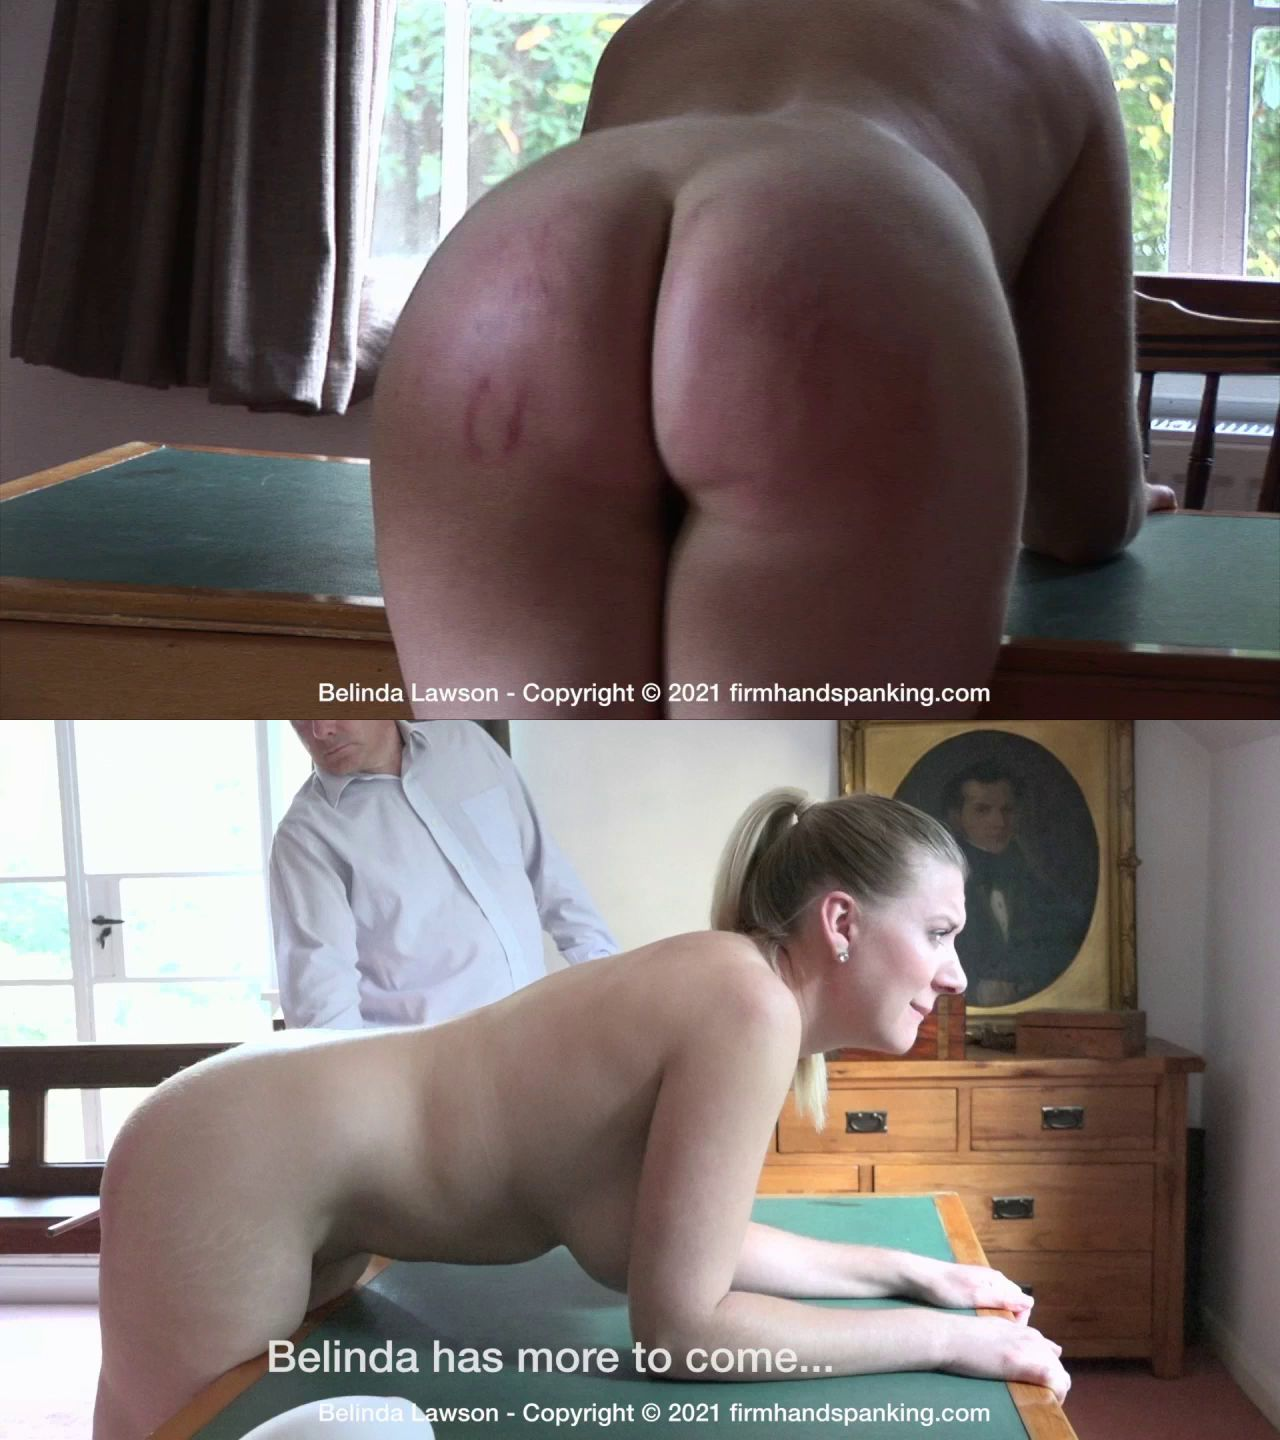 firmhandspanking – MP4/HD – Belinda Lawson – Leather Princess/Totally nude bottom-striping caning finale for Belinda Lawson